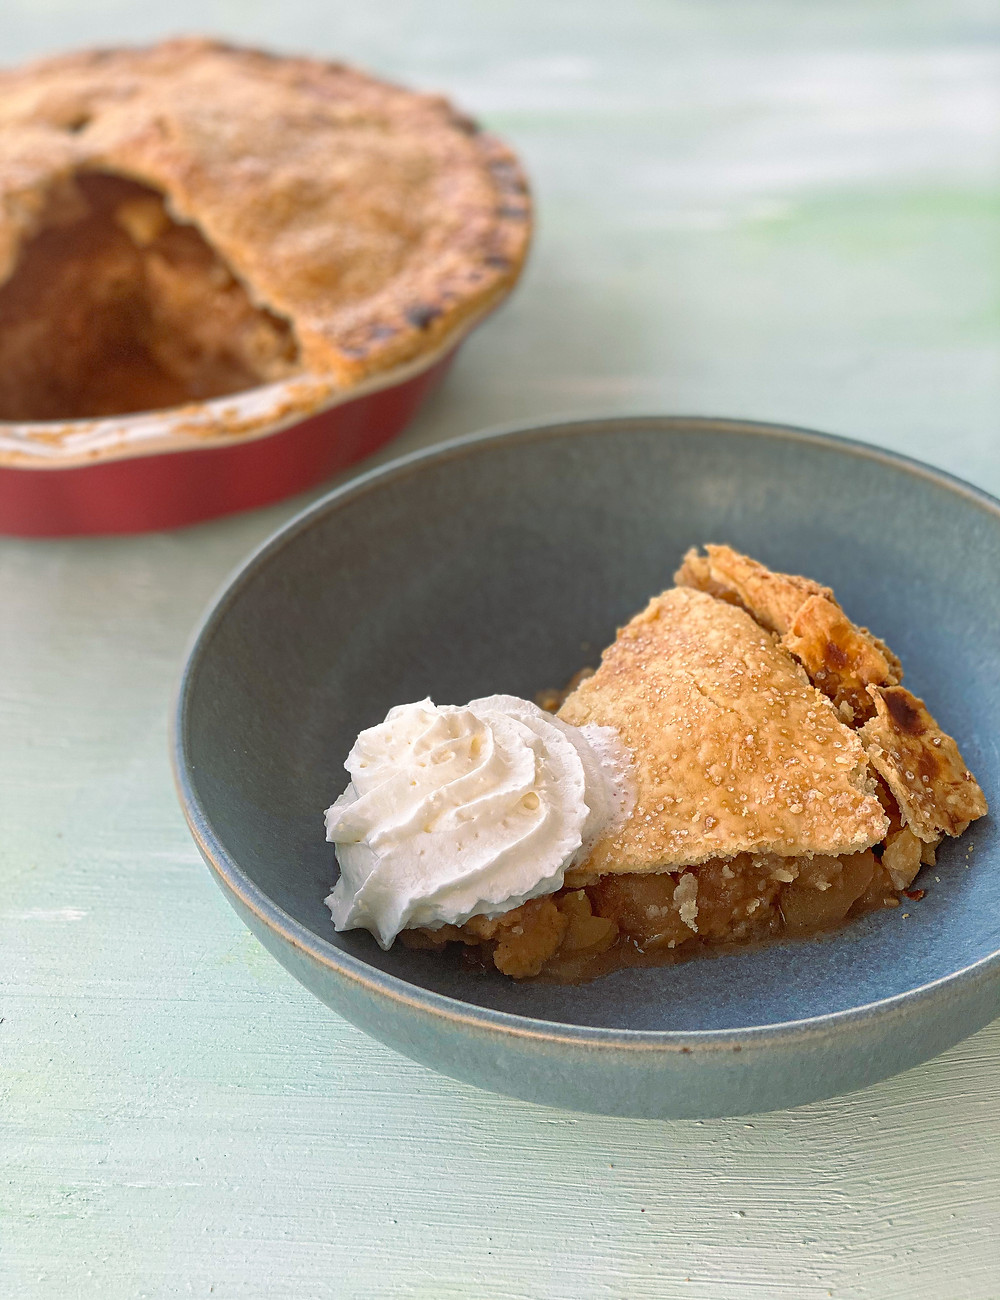 Warm apple pie with whipped cream